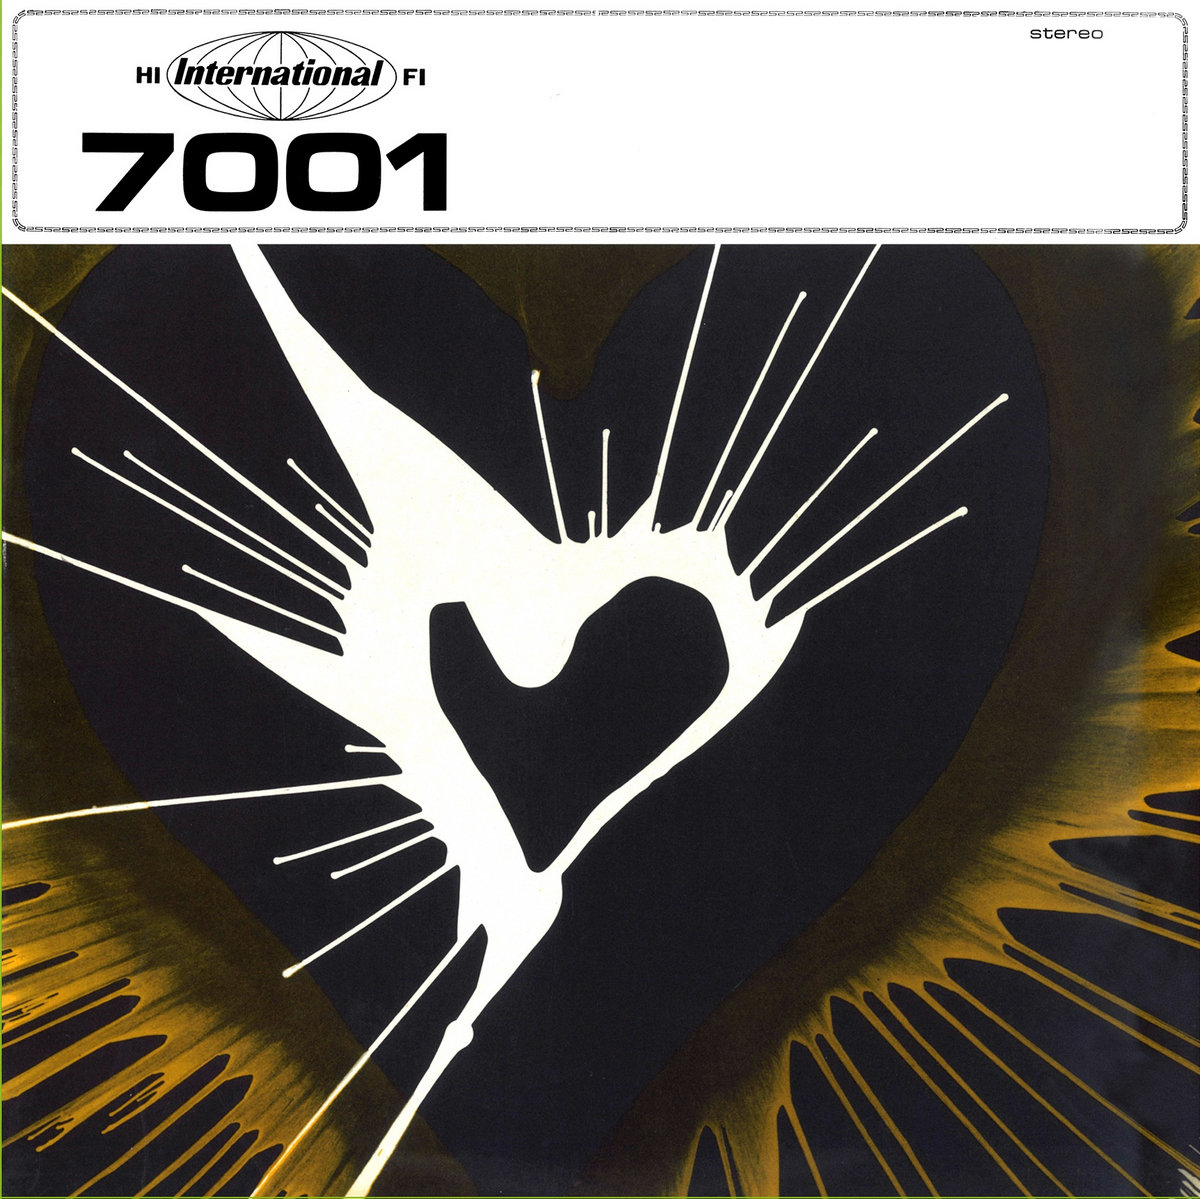 FONIT 7001 - ATMOSFERE